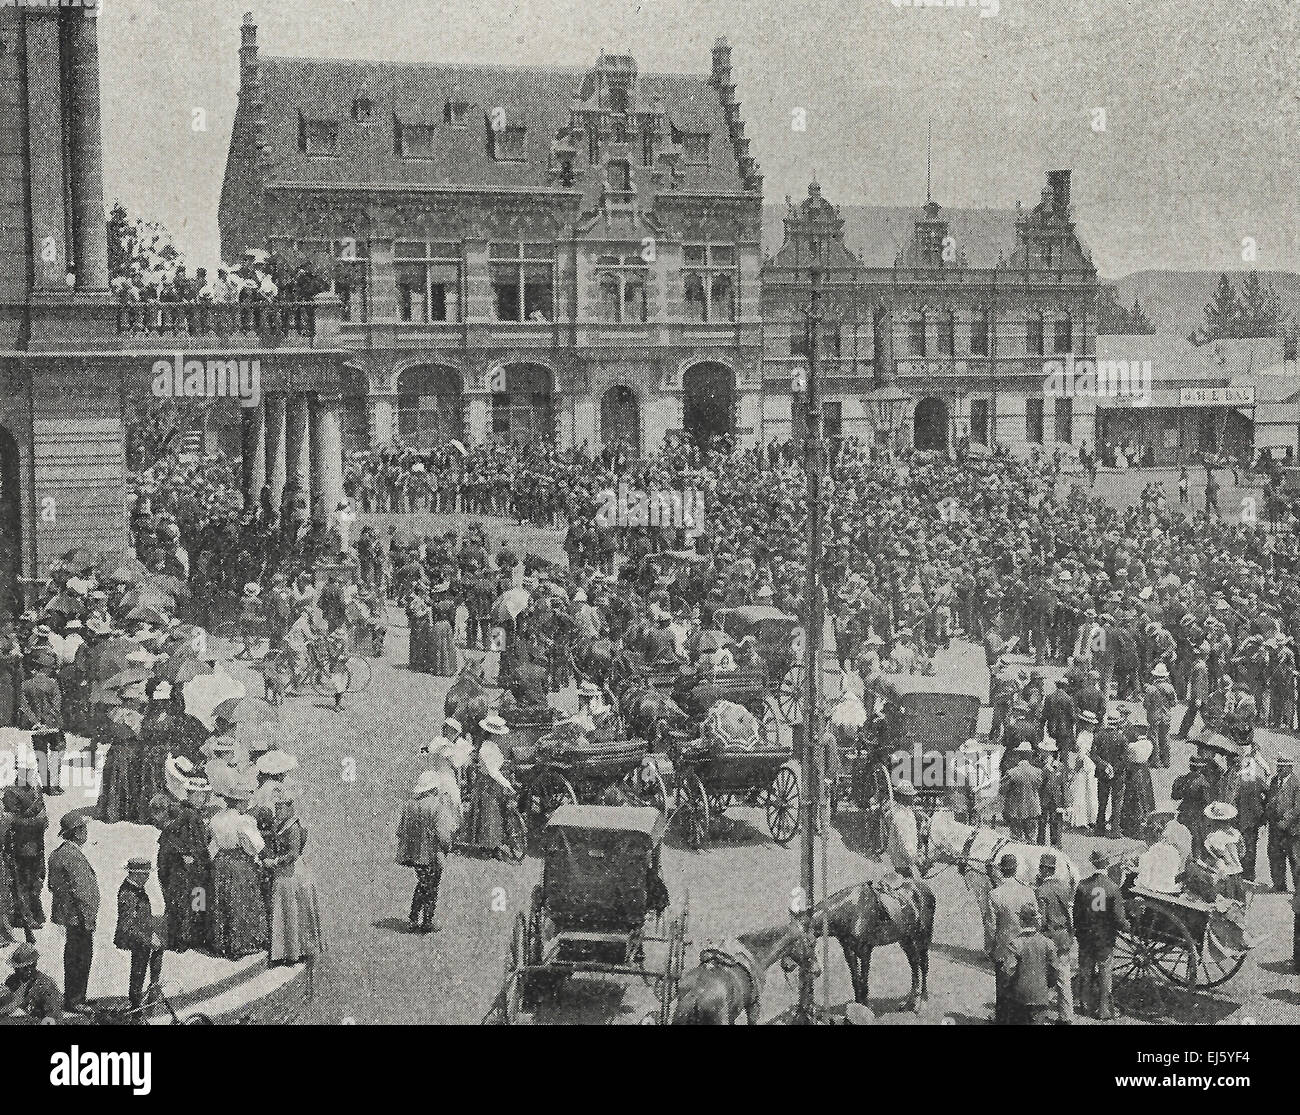 Muster of Town Burghers - Pretoria, South Africa, November 11, 1899 - Stock Image